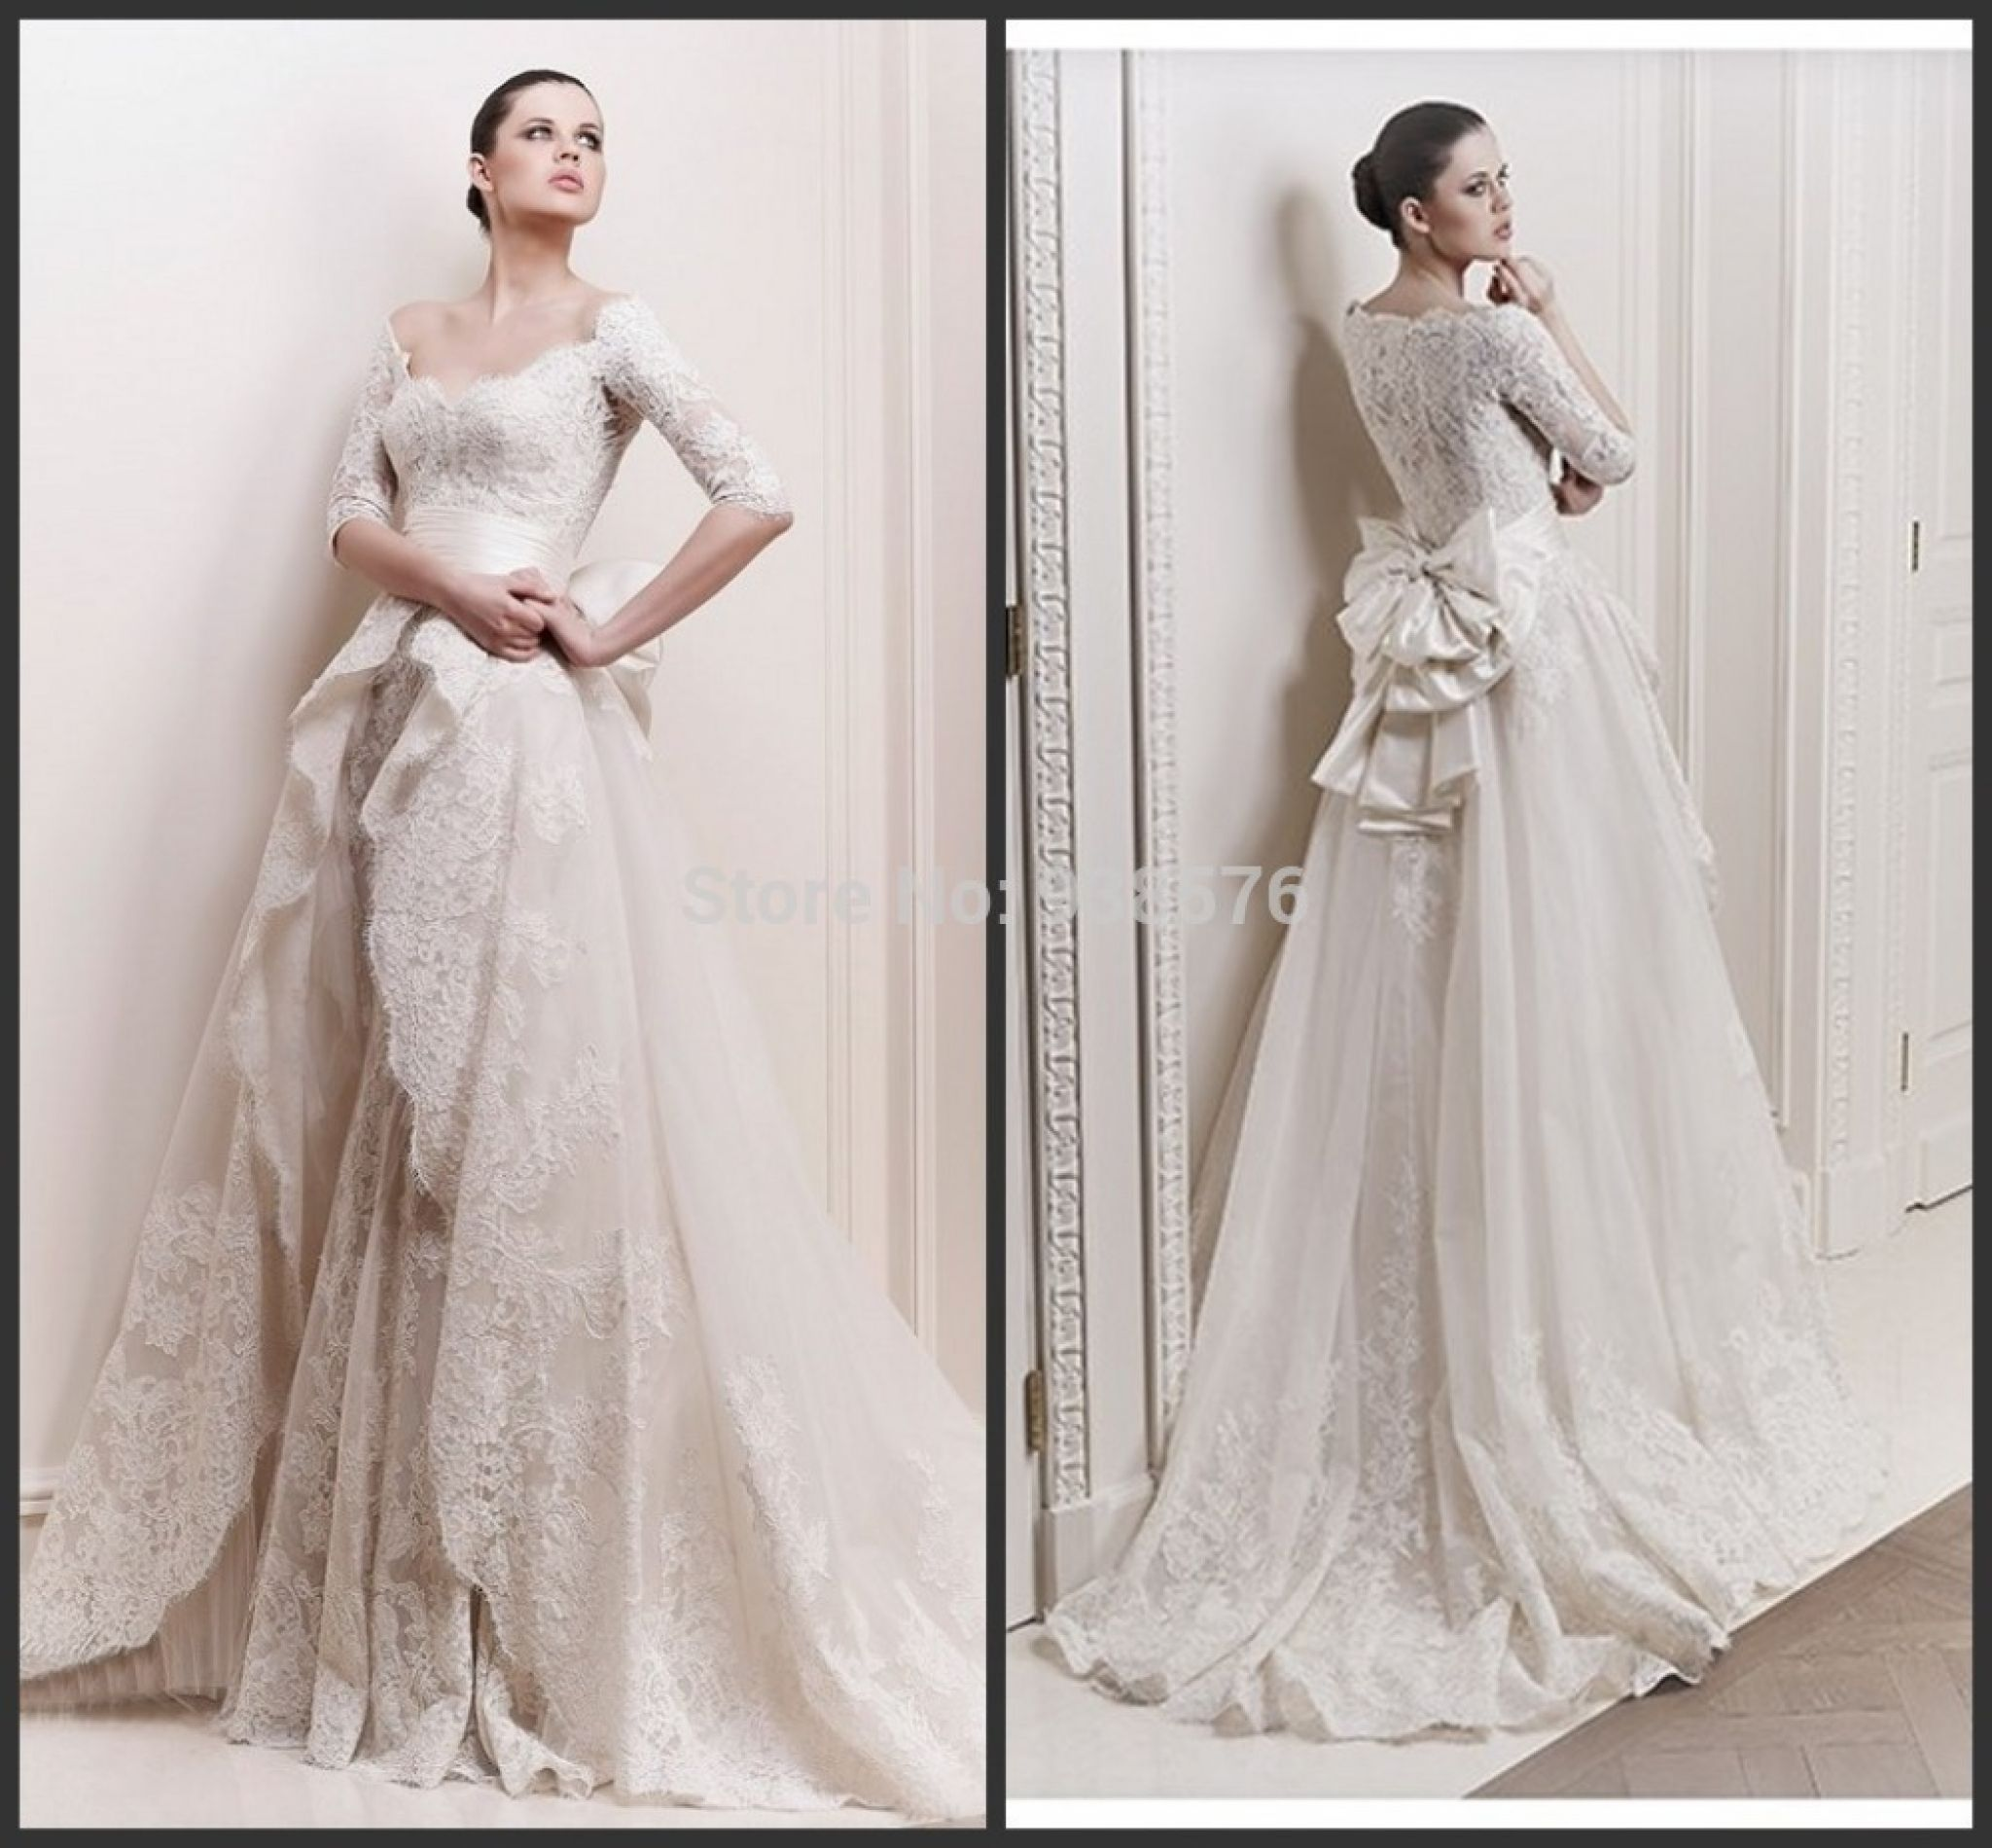 Wedding Dresses Shopping Online   Dressy Dresses For Weddings Check More At  Http://